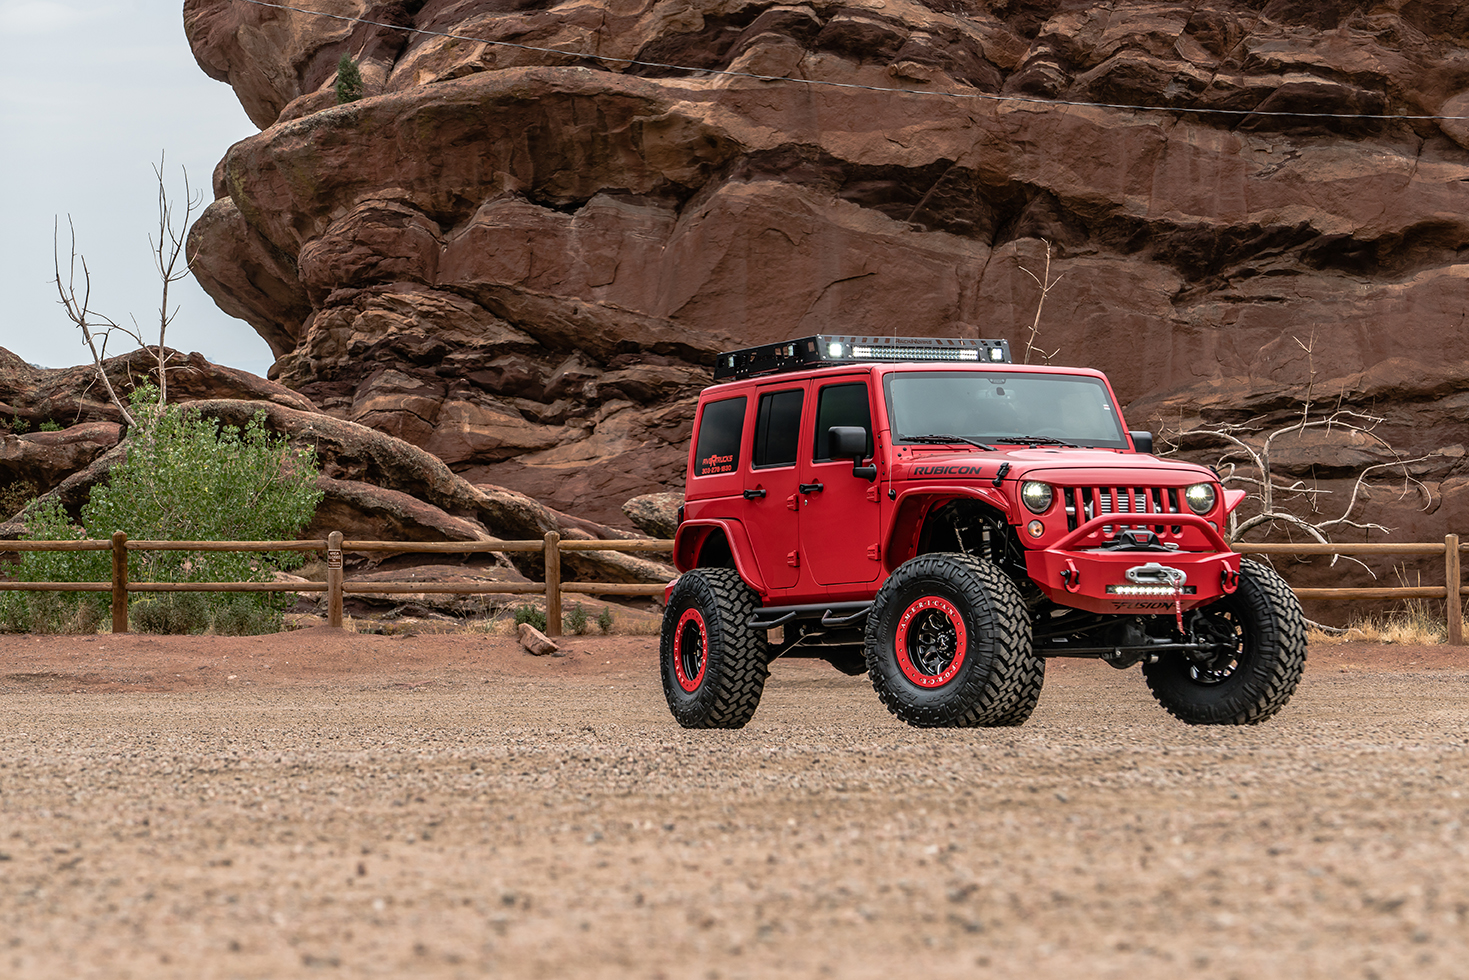 005-fiver-red-jeep-160805.jpg